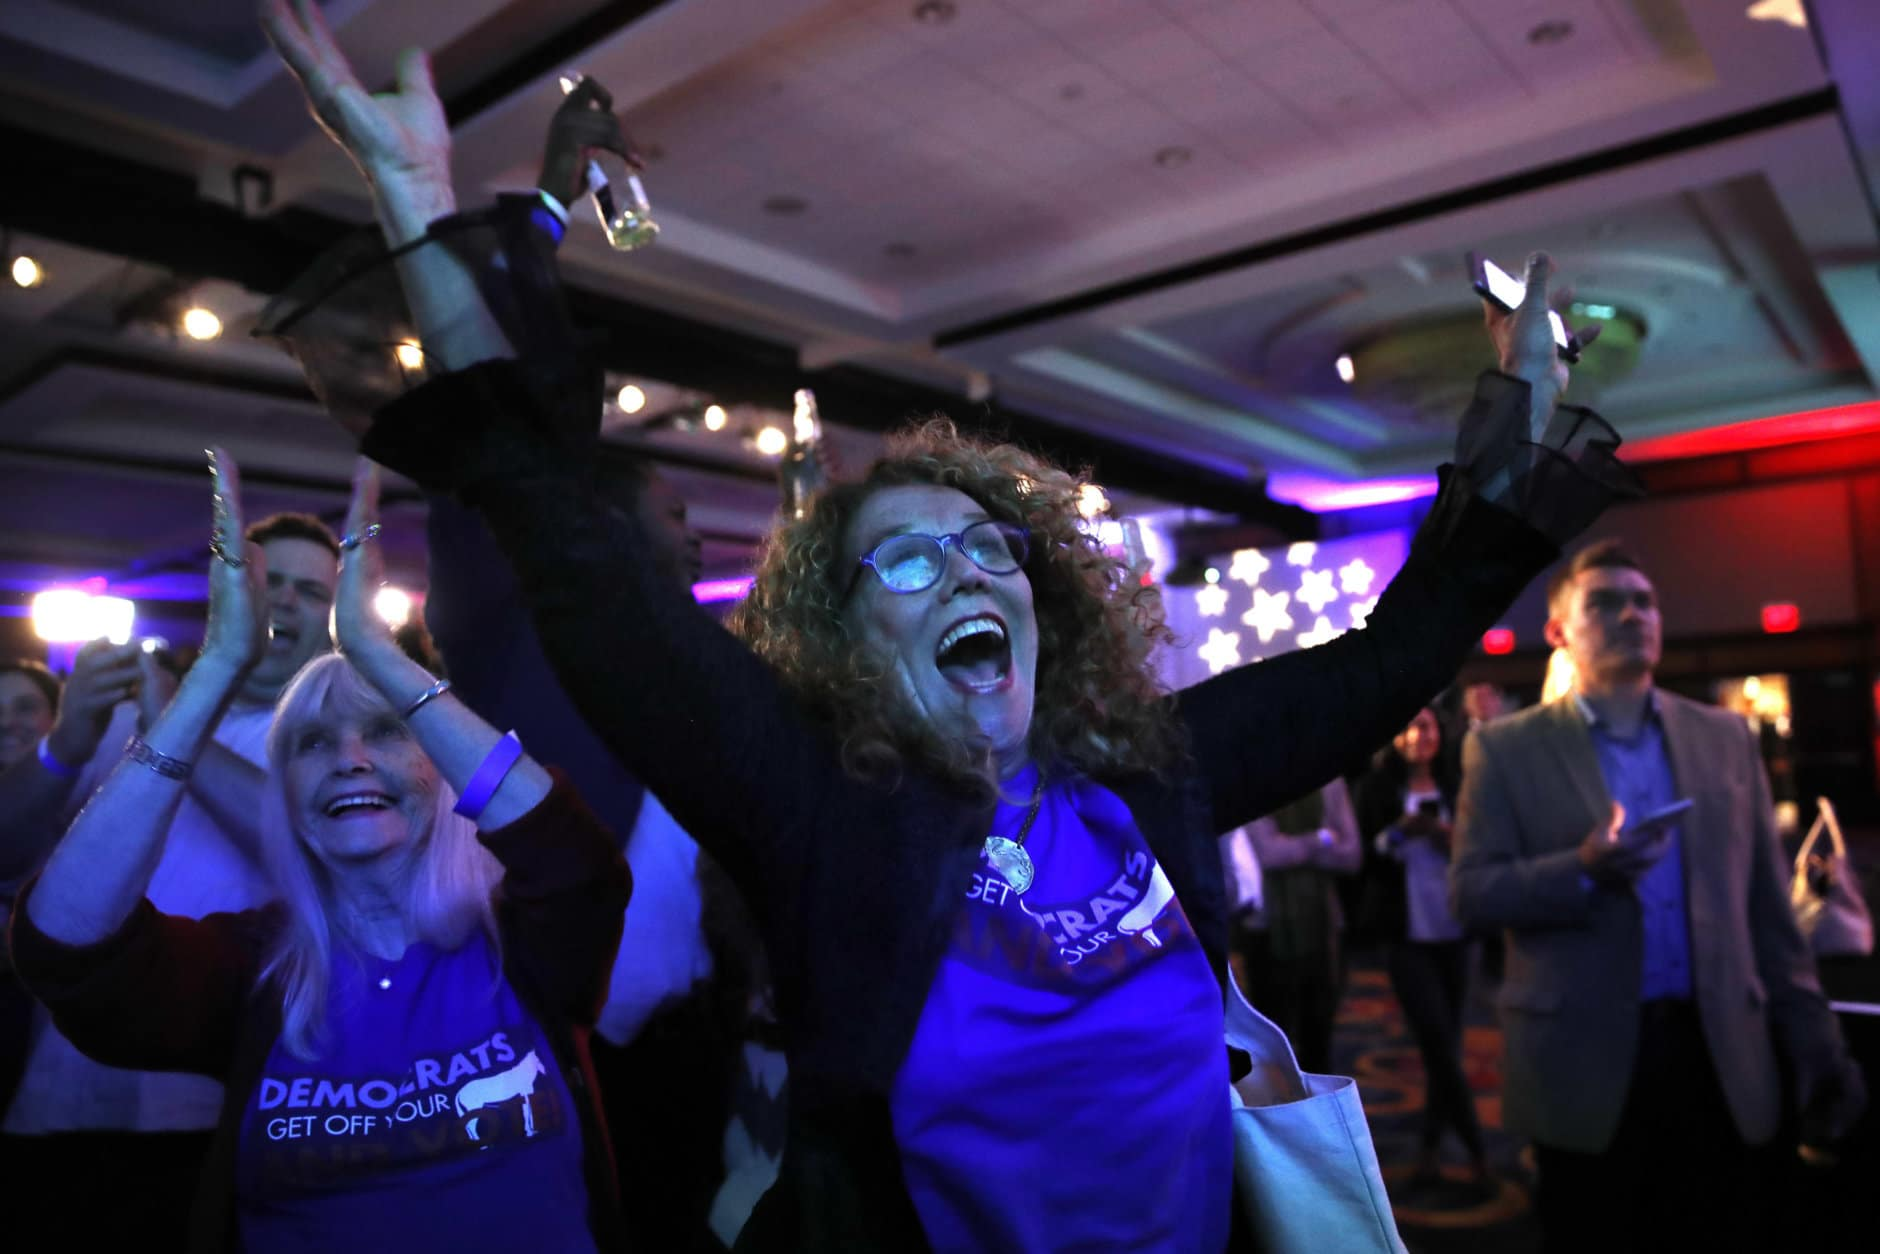 Sydney Crawford, 84, left, of New York, and JoAnn Loulan, 70, of Portola Valley, Calif., cheer as election returns come in during a Democratic party election night event at the Hyatt Regency Hotel in Washington on Tuesday, Nov. 6, 2018. (AP Photo/Jacquelyn Martin)